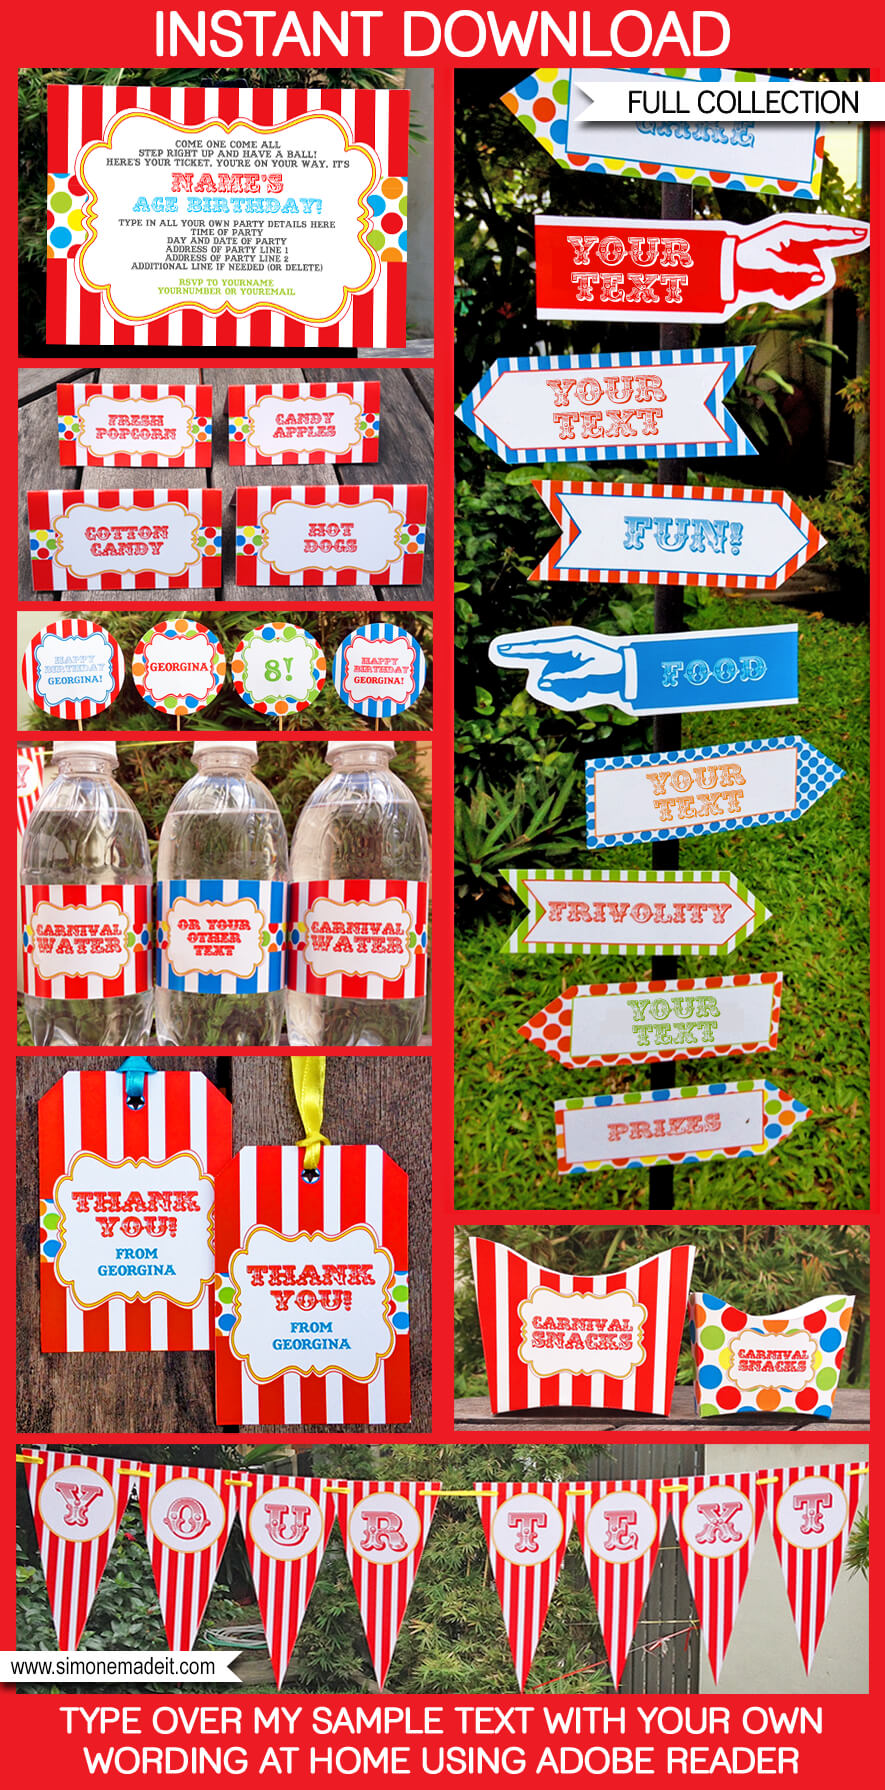 Circus Or Carnival Party Printables Invitations Decorations Birthday Editable Theme Templates